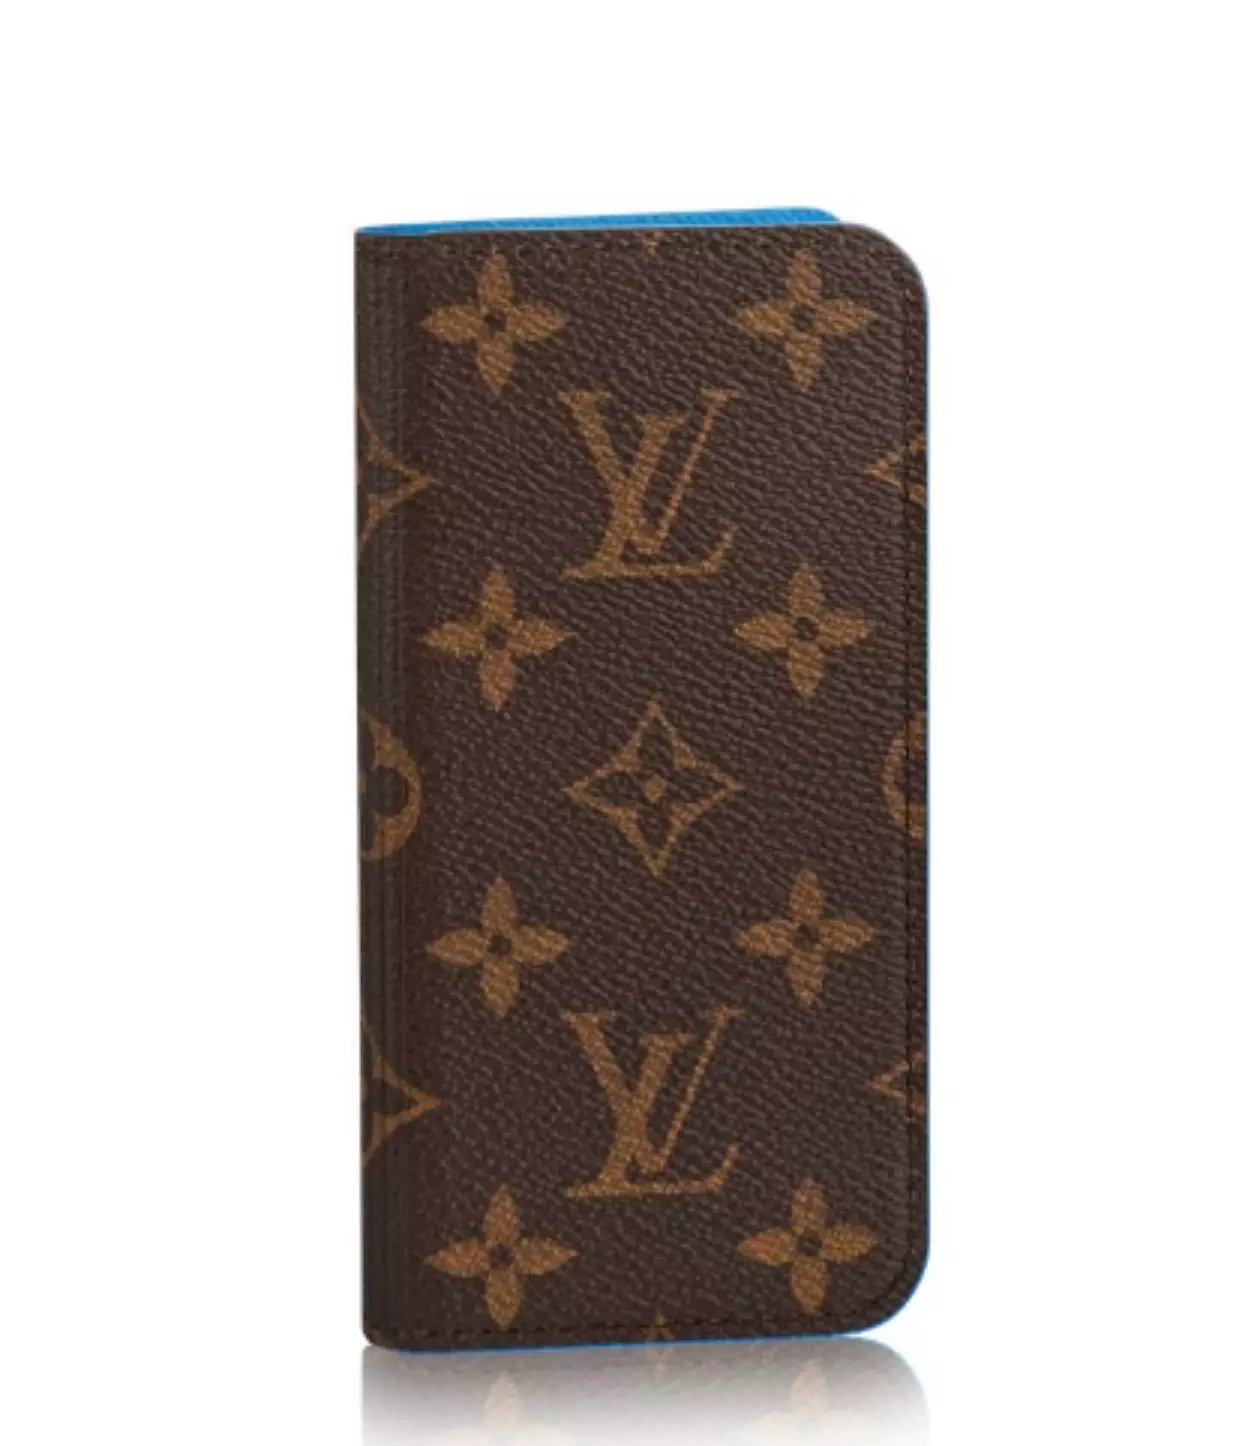 iphone 8 designer covers iphone 8 cases fashion Louis Vuitton iphone 8 case where can i get iphone cases iphone cover case design a iphone 8 case most popular iphone 8 cases iphone 8 design phone case shop